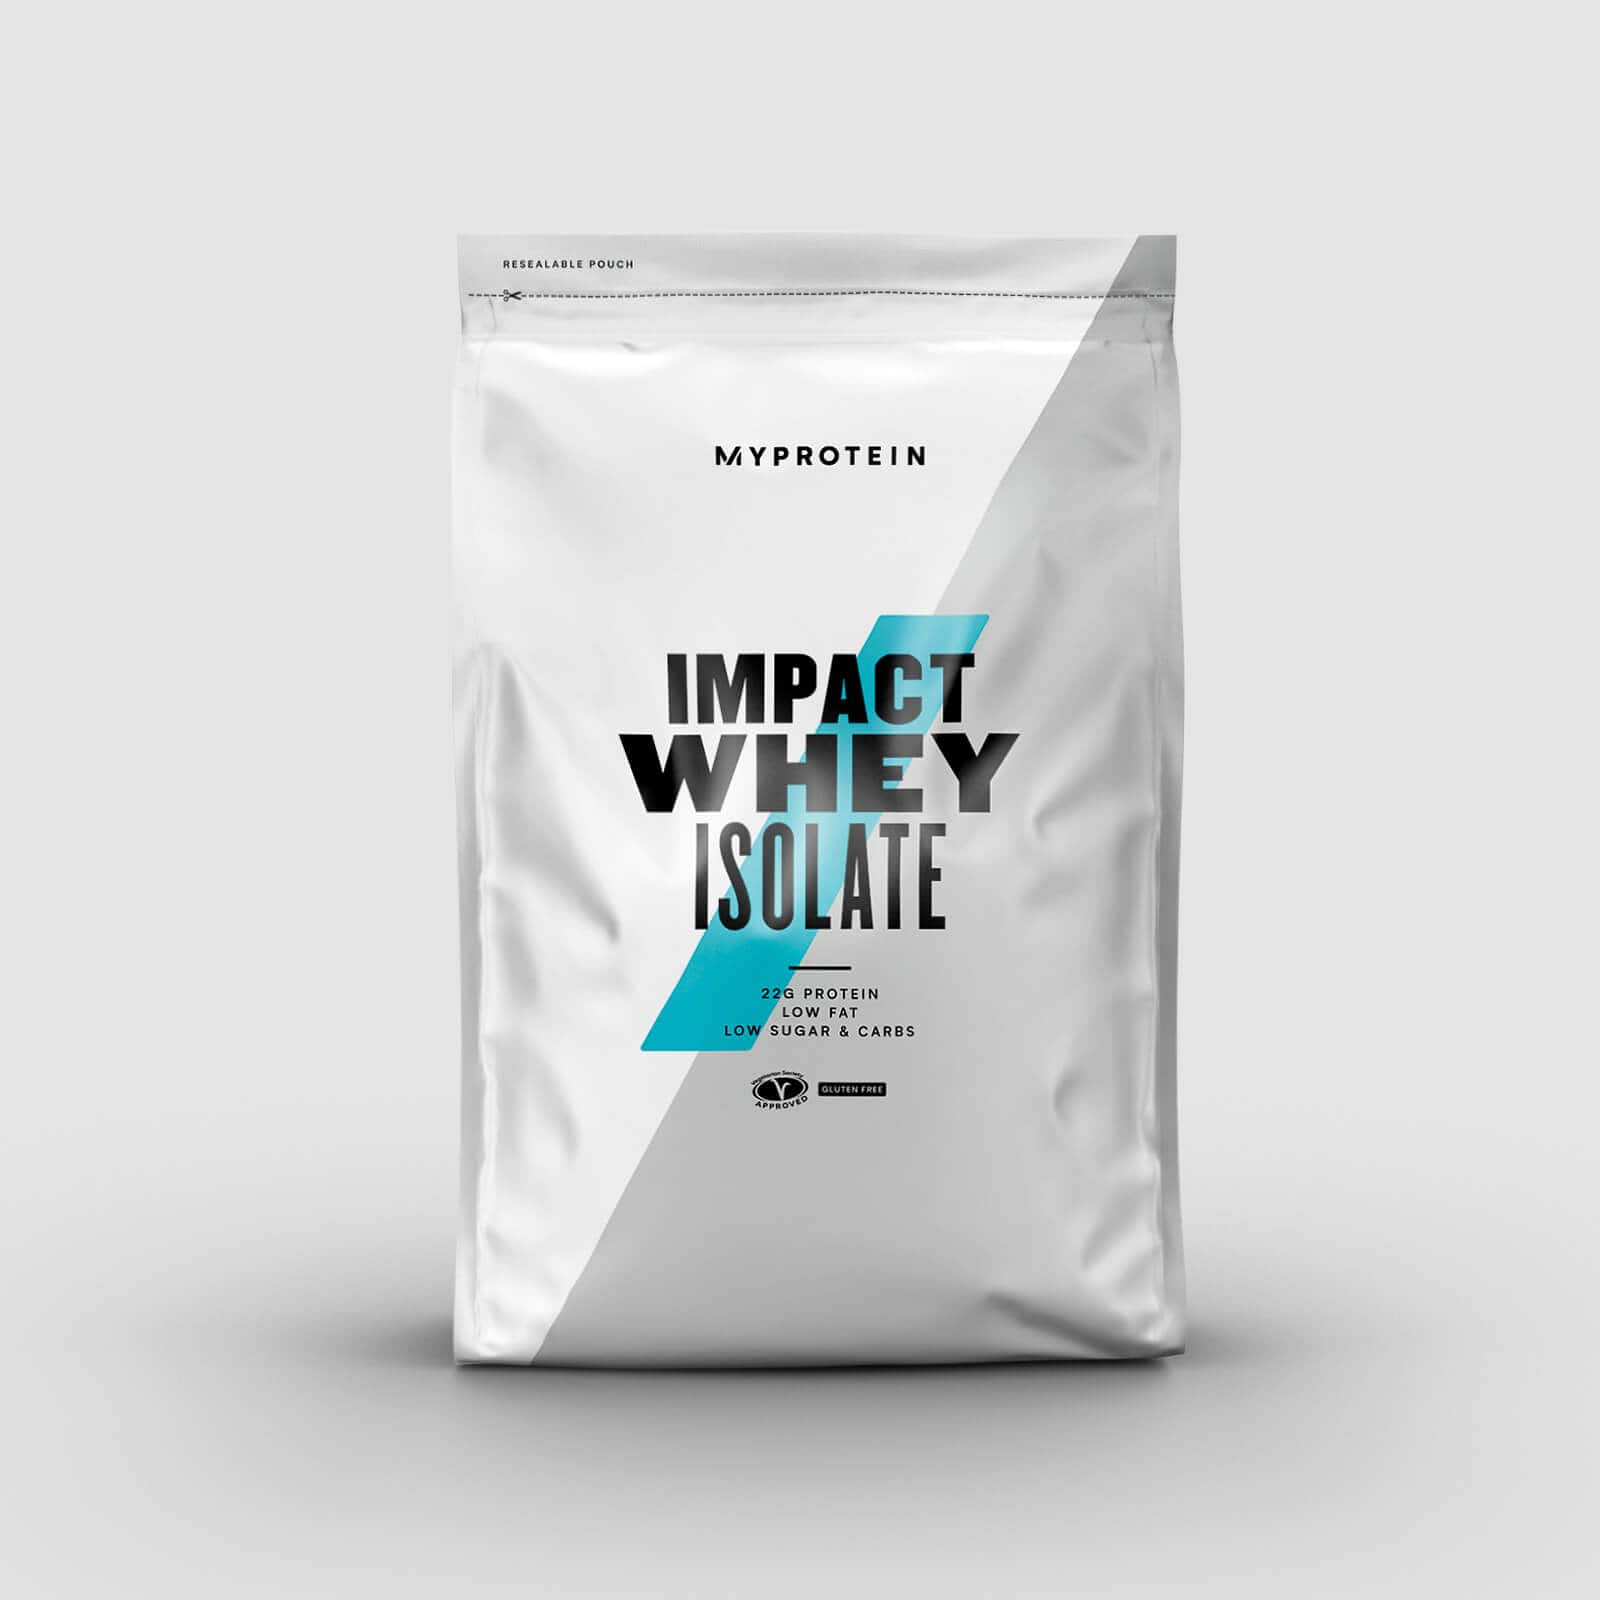 5.5lbs of Impact Whey Isolate and free shipping for $37 + FS